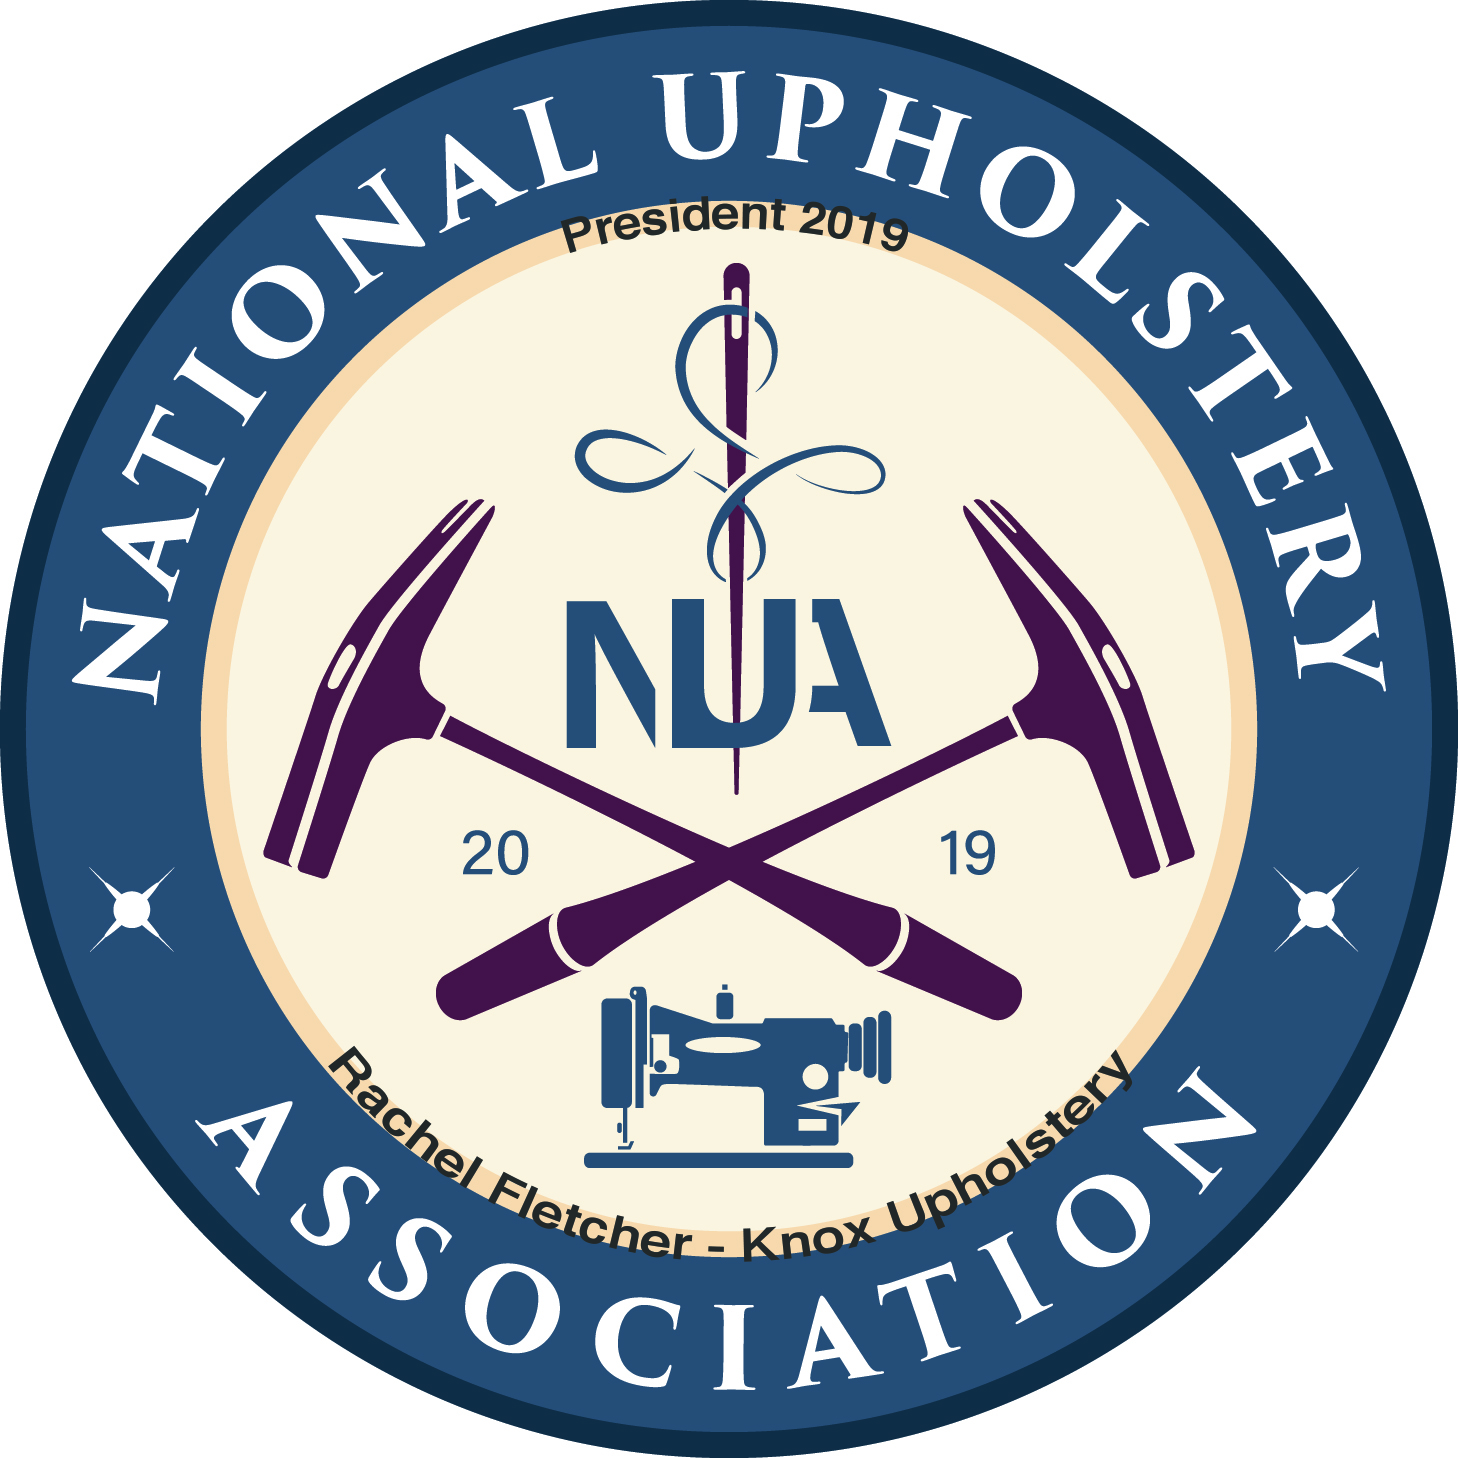 Rachel Fletcher was voted in as the founding President of the National Upholstery Association on March 6, 2019.